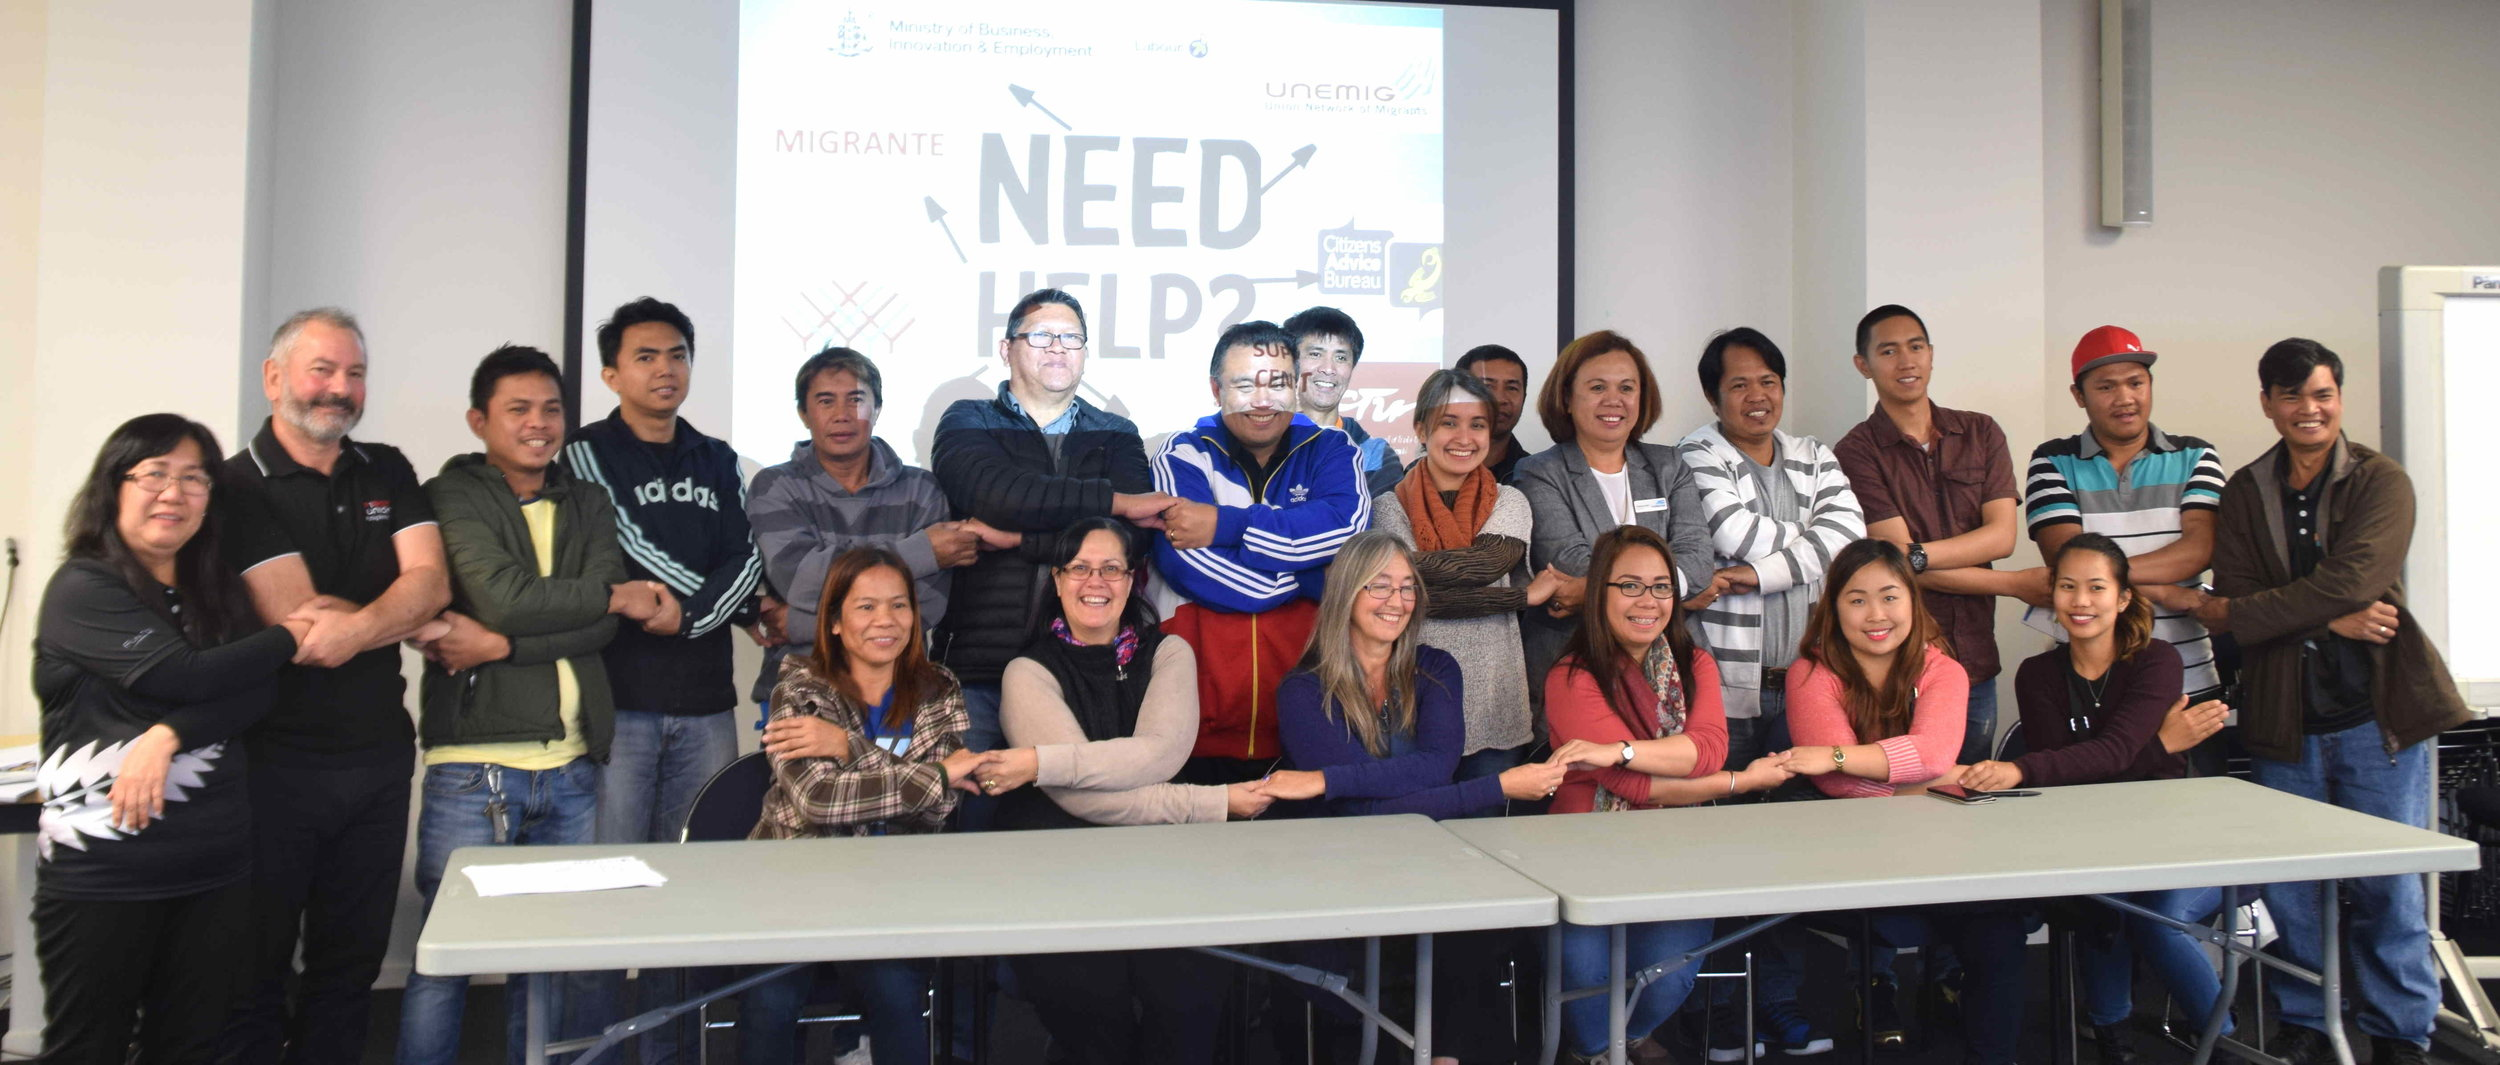 Gathering at the post arrival orientation seminar organised by the United Network of Migrants, and Migrante Aotearoa in Christchurch on March 26. Representatives from First Union (Paul Watson), and Ashburton's first district councillor of Philippine origin Thelma Bell, also attended the event.